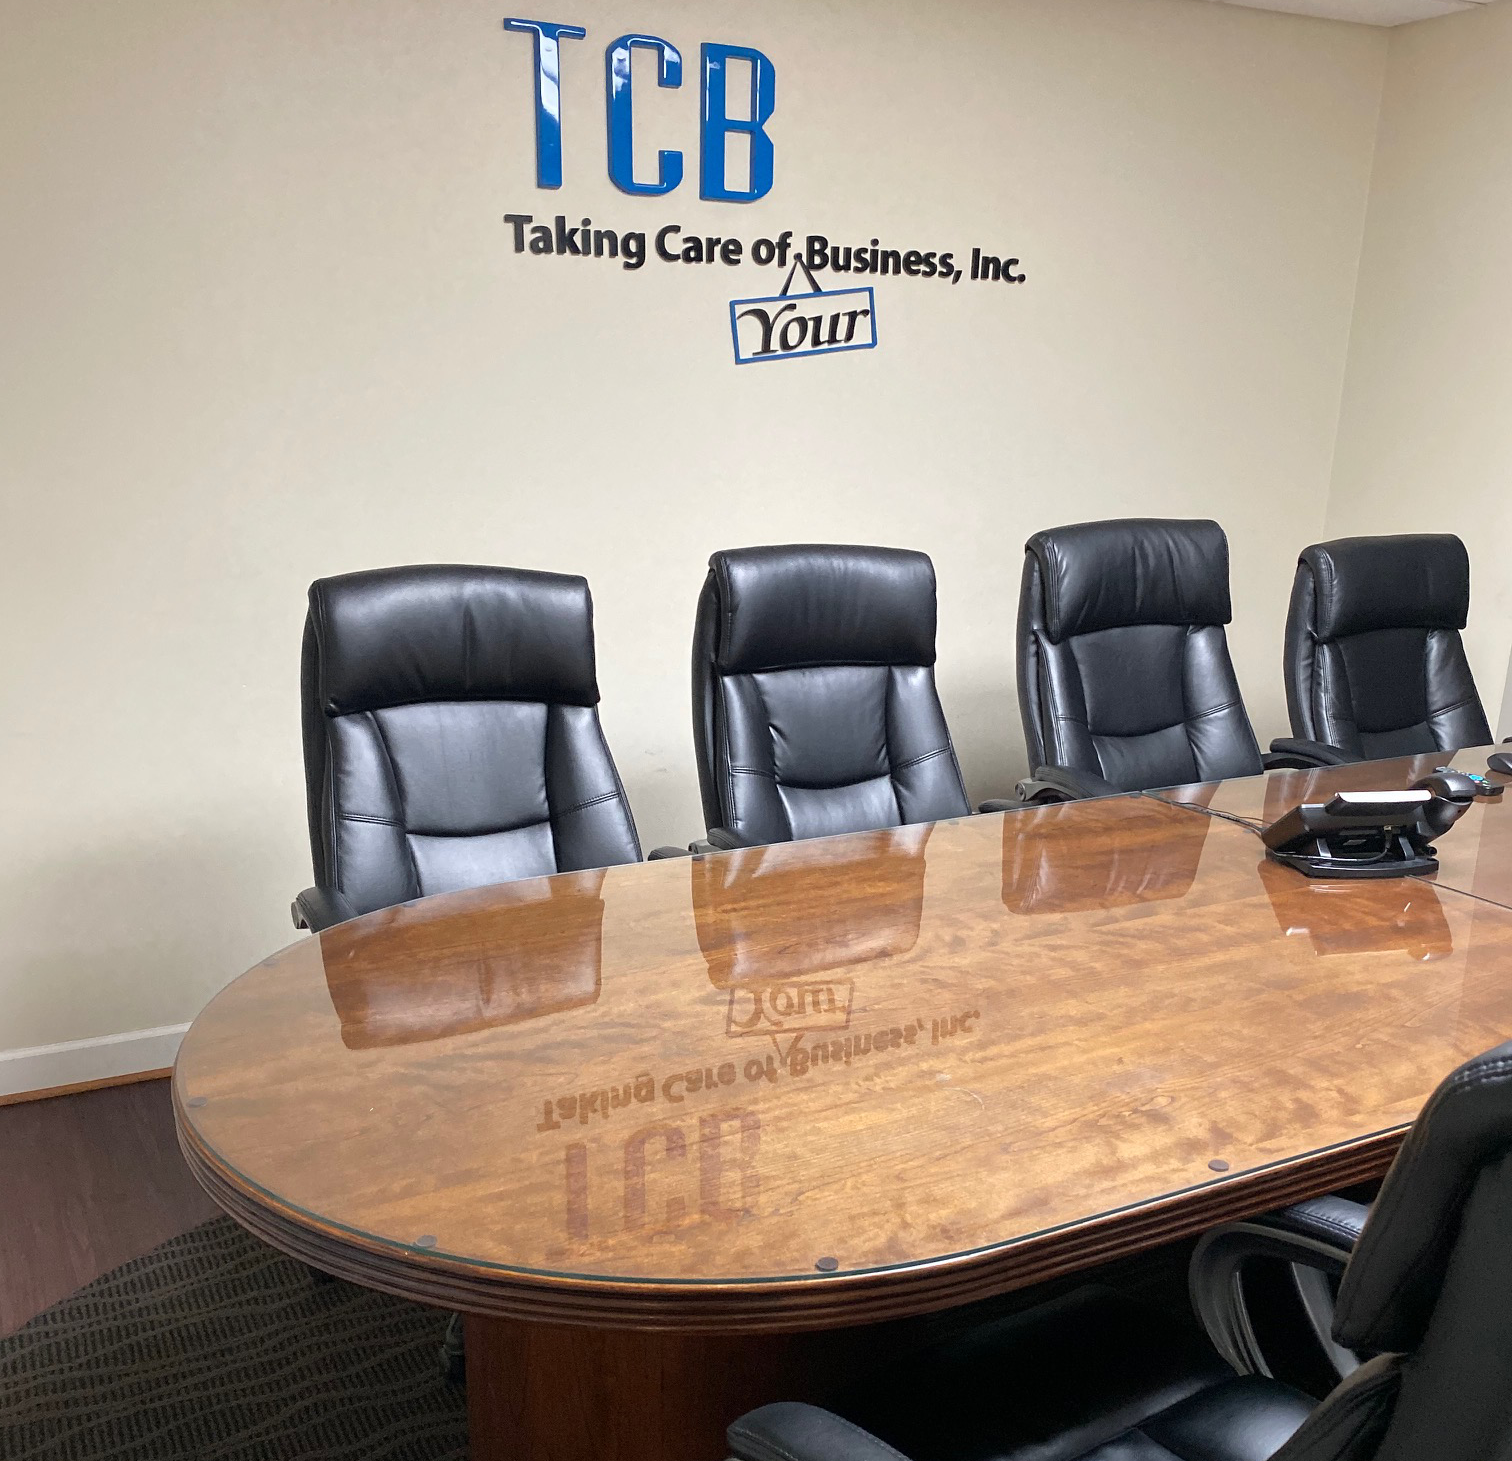 About TCB